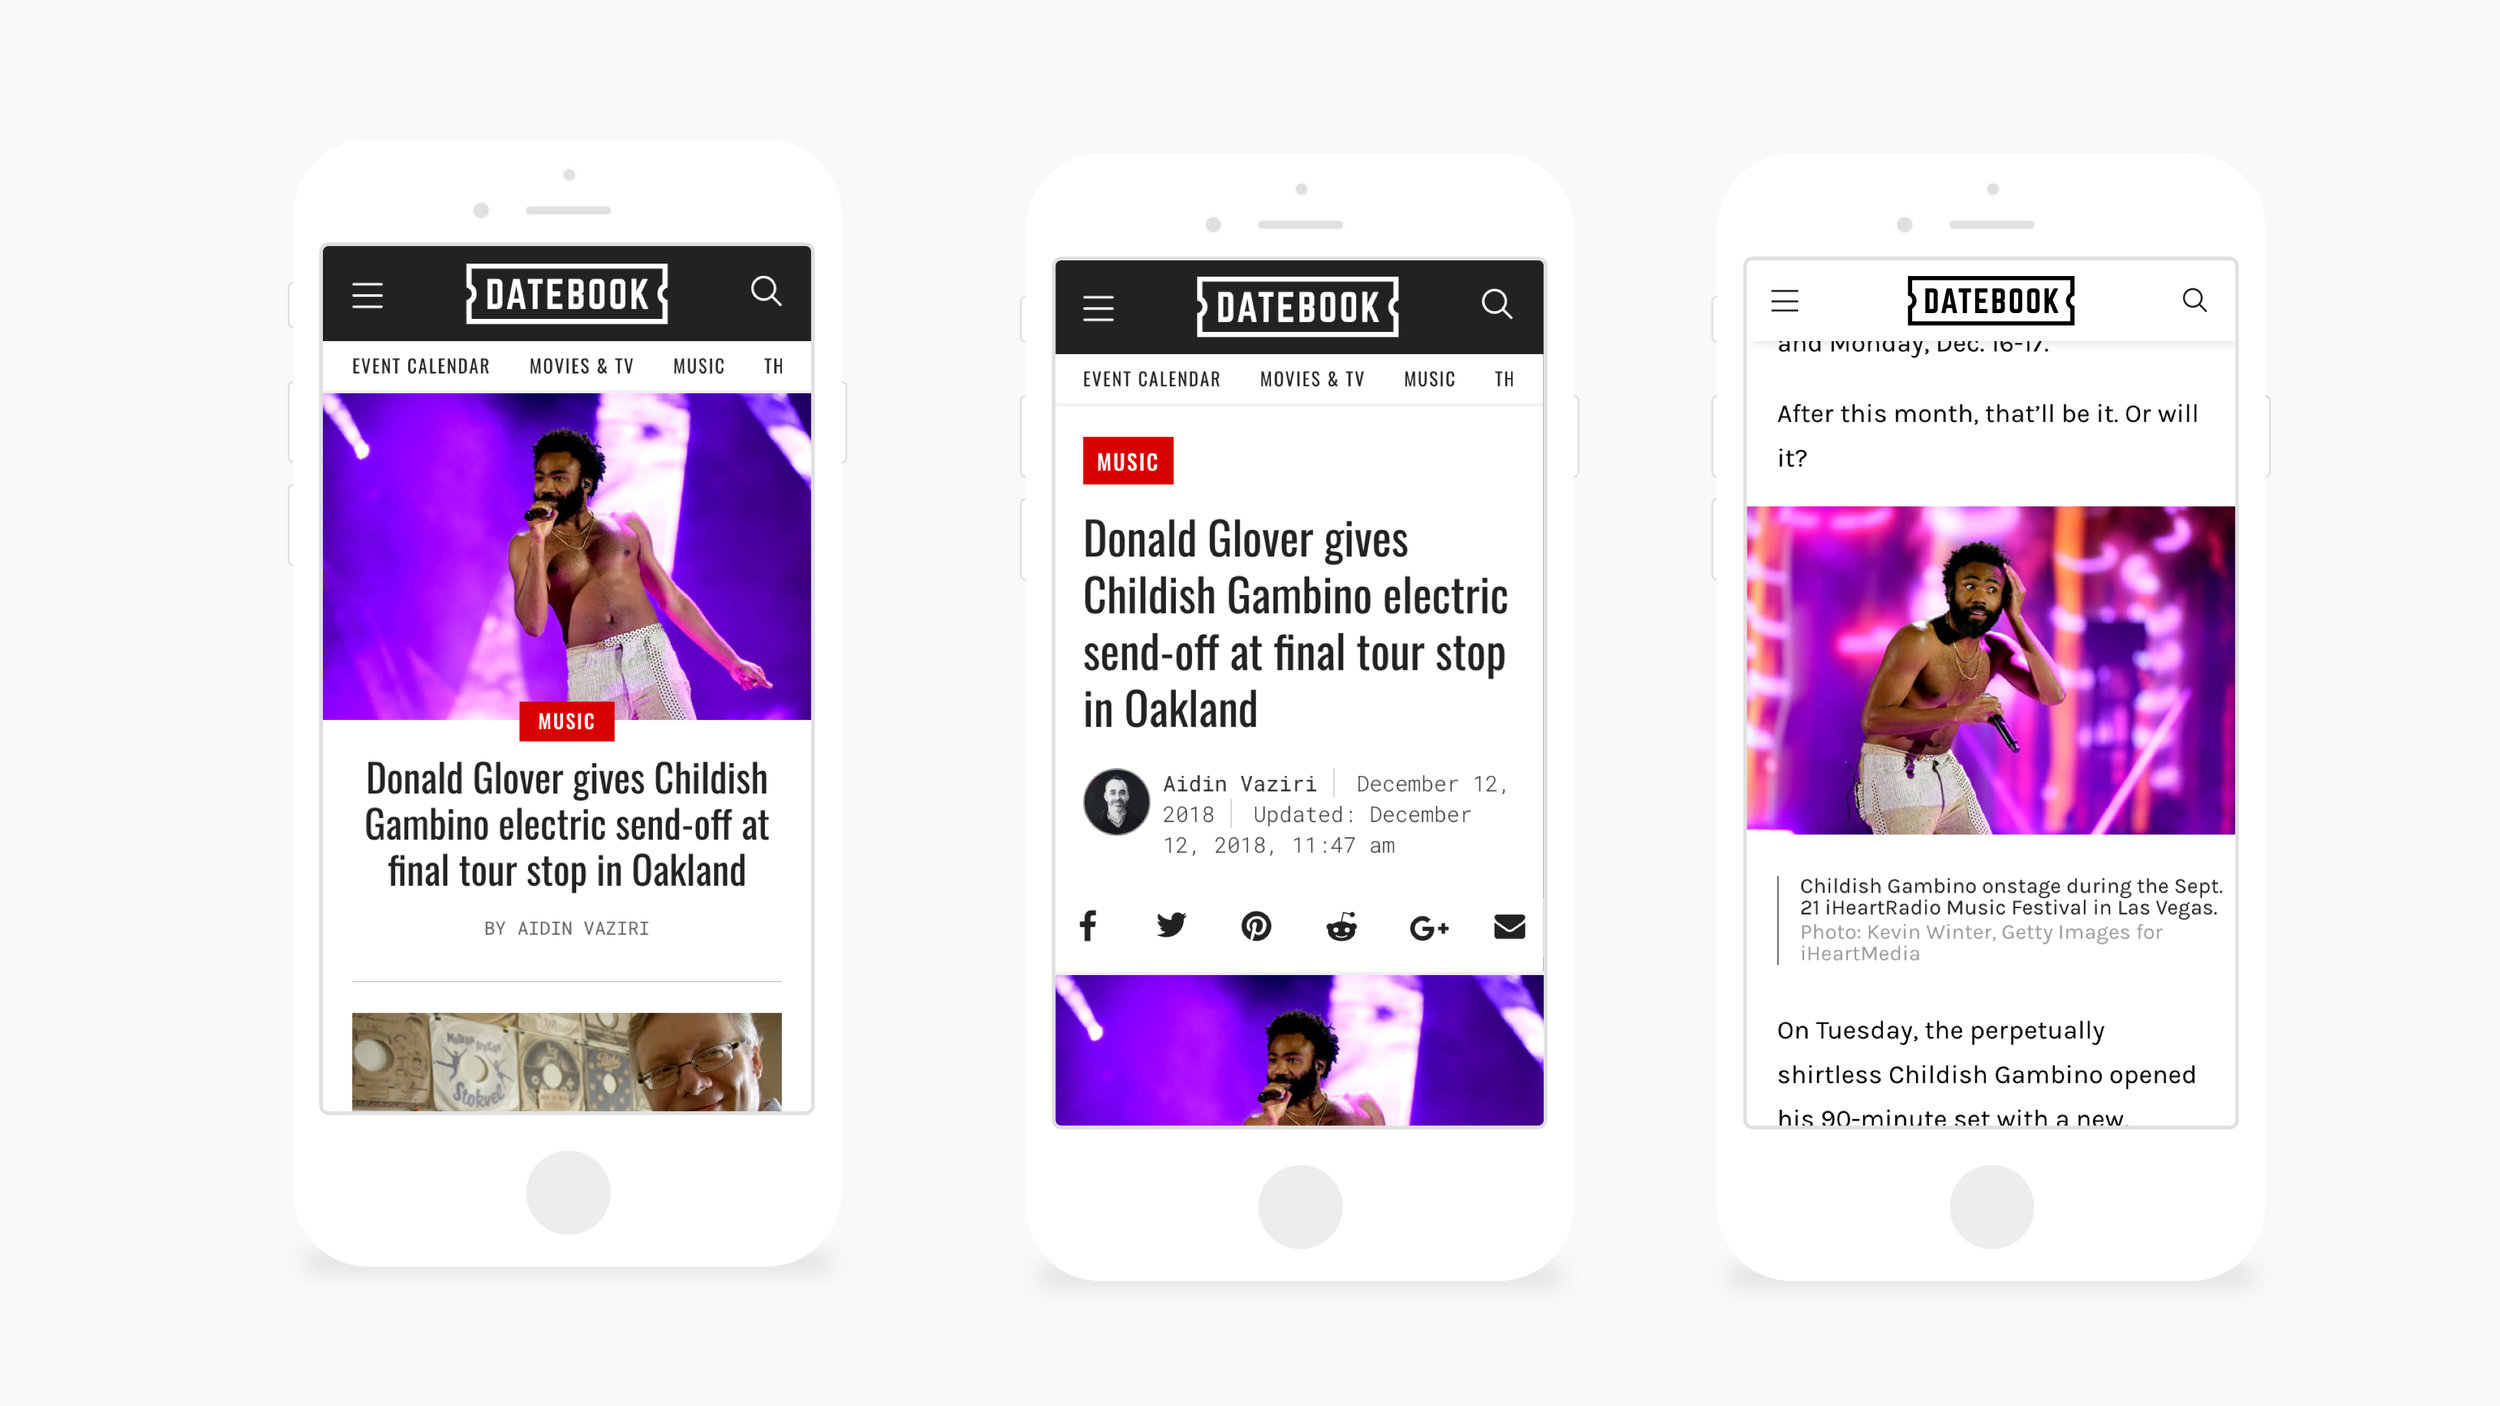 Mobile screenshots of Datebook (Homepage, Article Page, Article Page Scrolled)